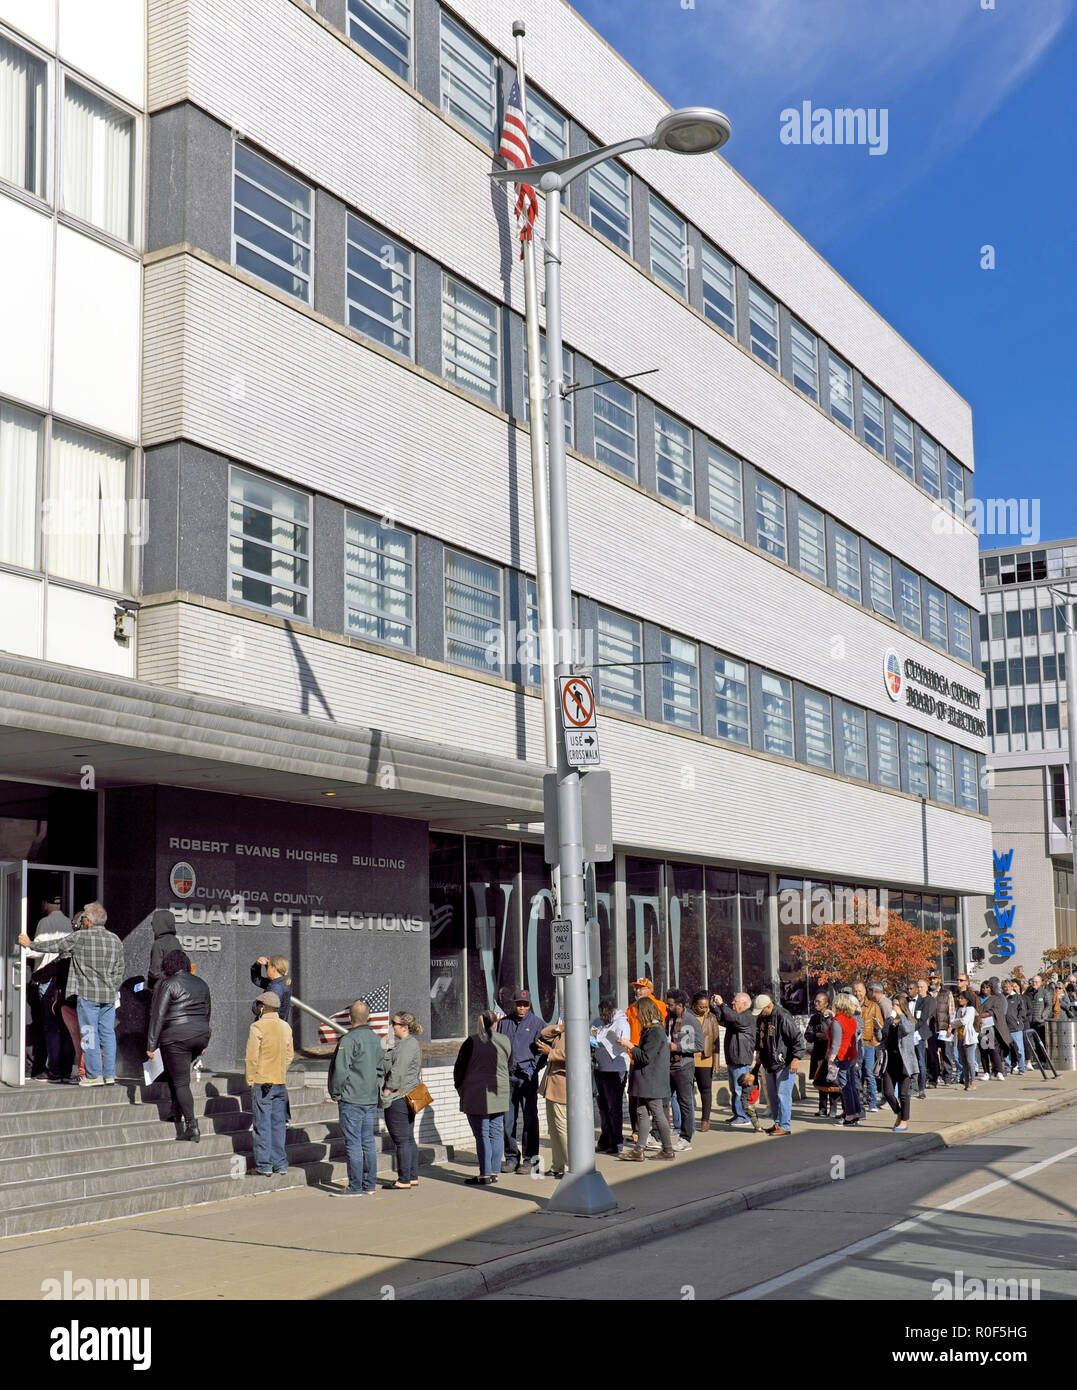 Cleveland, Ohio, USA.  4th Nov, 2018. A long line of early voters for the 2018 US midterm elections wait in front of the Cuyahoga County Board of Education in downtown Cleveland, Ohio, USA.  They are part of the record breaking number of over 27 million people across the US who are voting prior to Election day on November 6, 2018. - Stock Image